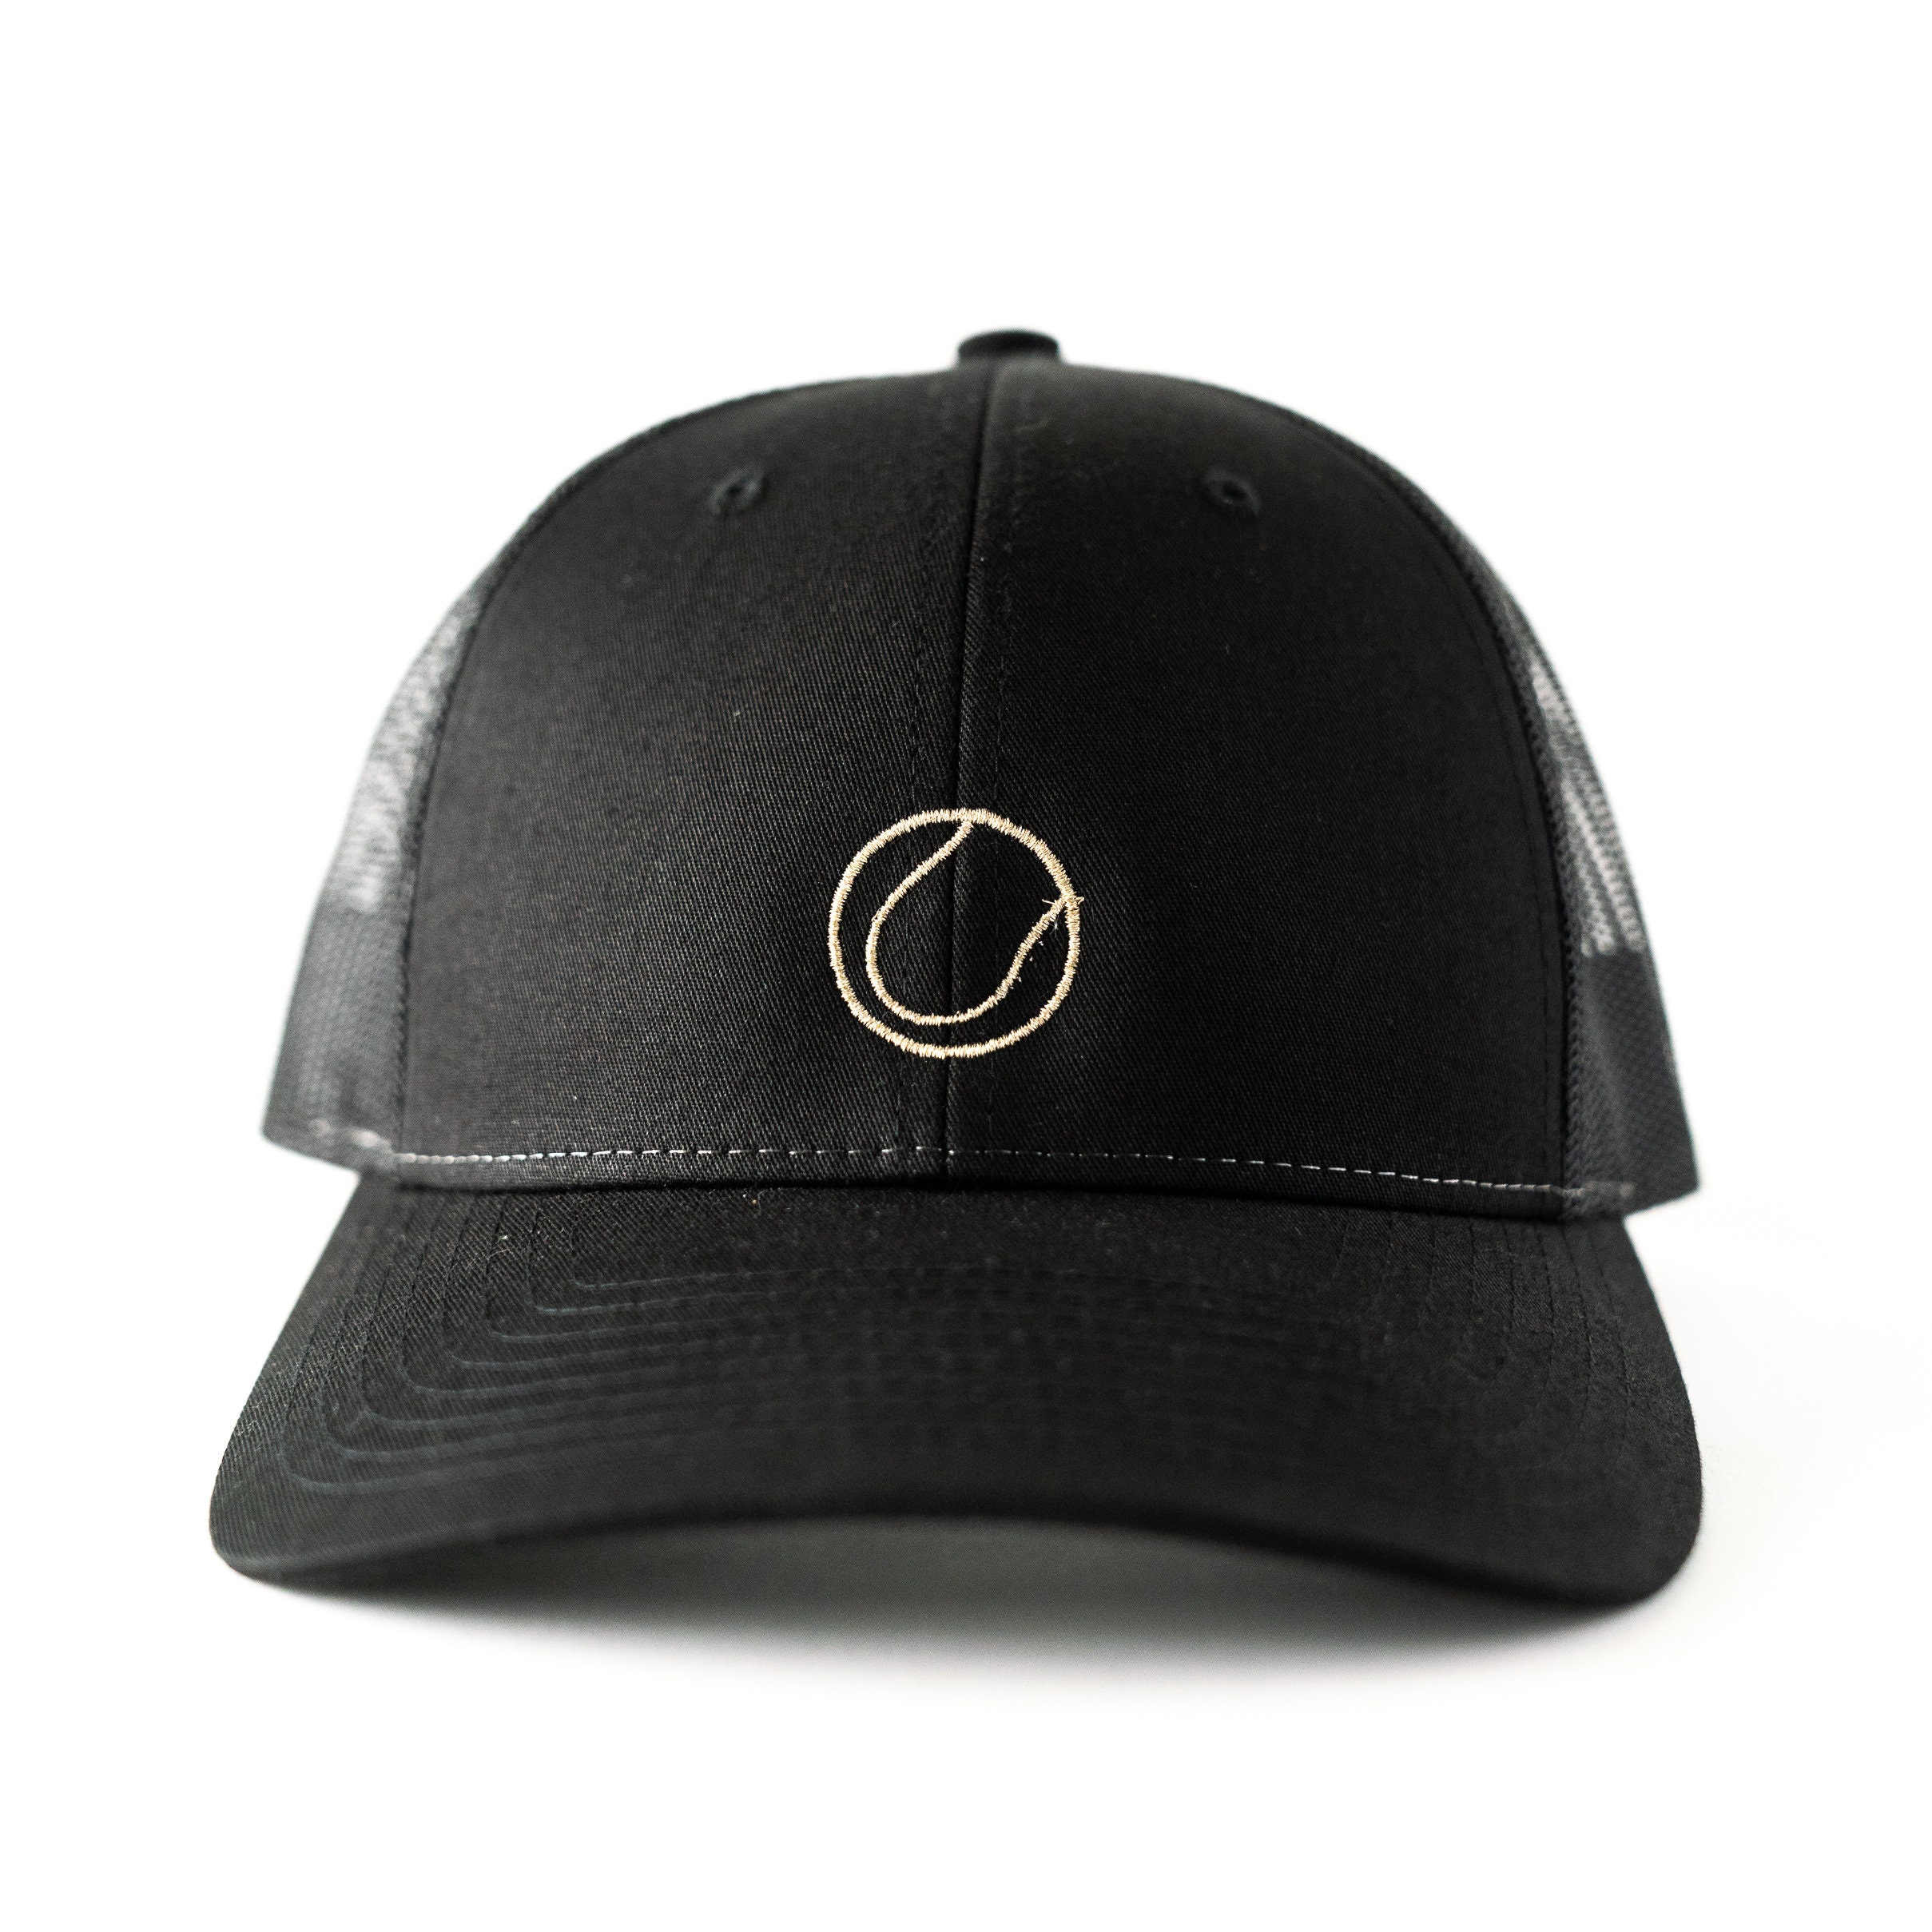 436280b551aed Embroidered Black Trucker Hat with Gold Metallic Tennis Ball